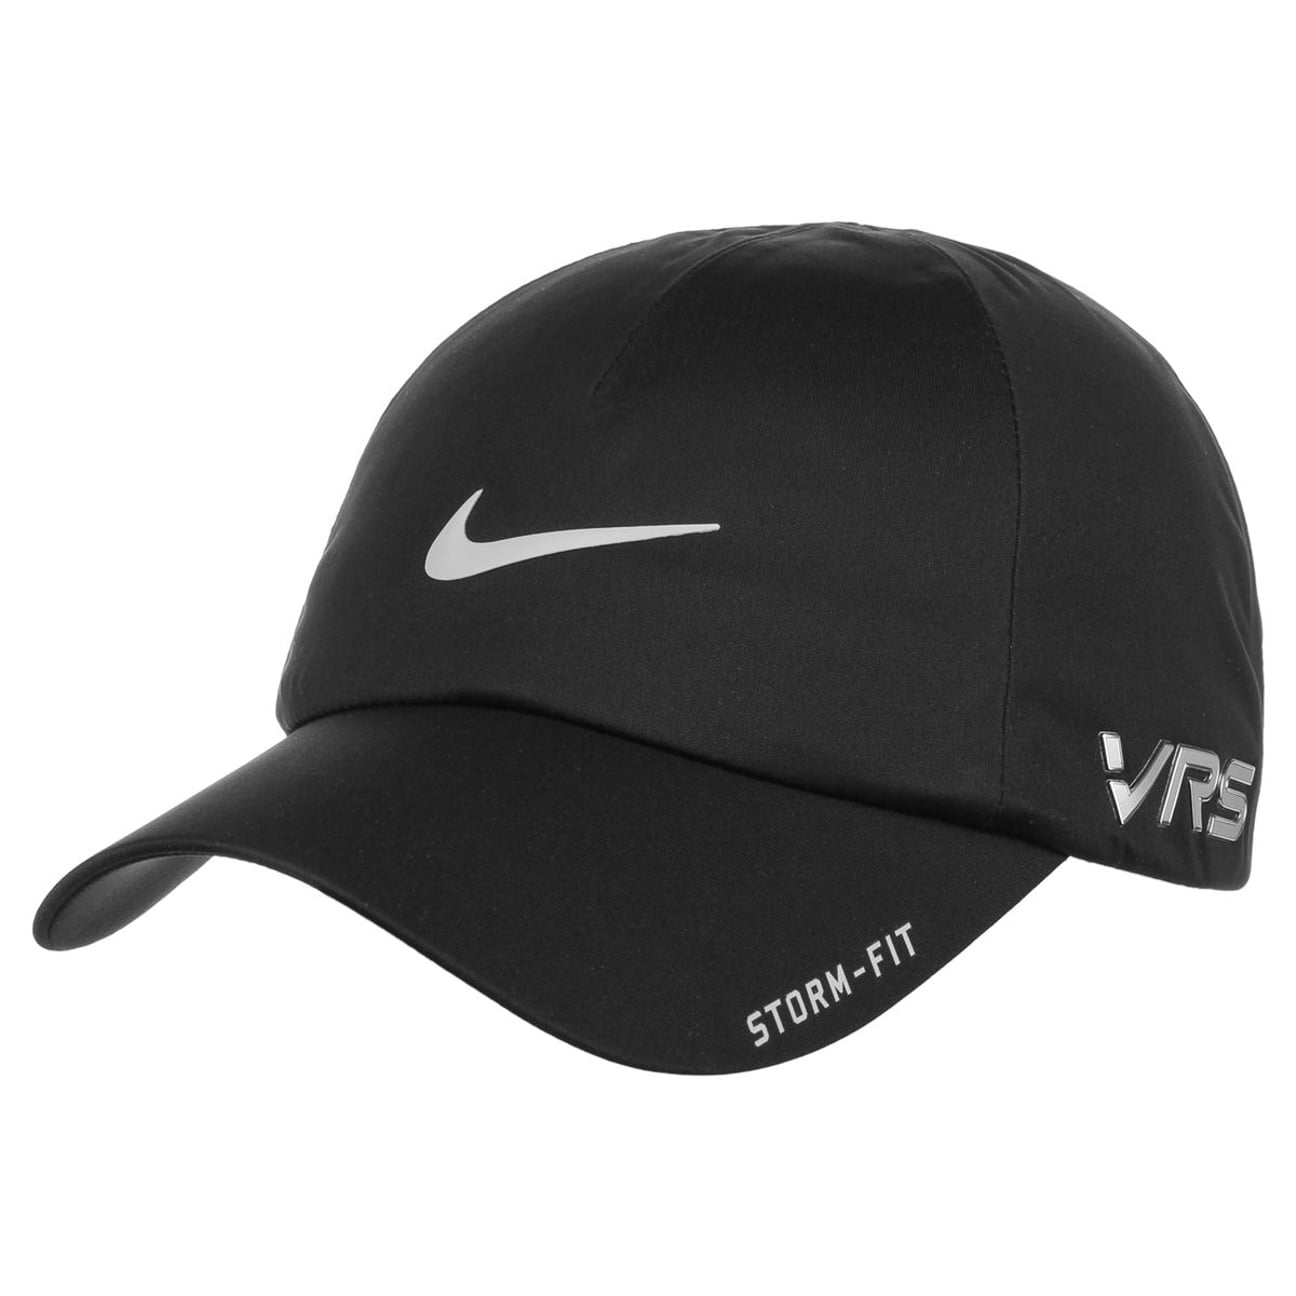 Gorra Storm-Fit Tour by Nike - Gorras - sombreroshop.es ae0a787b759